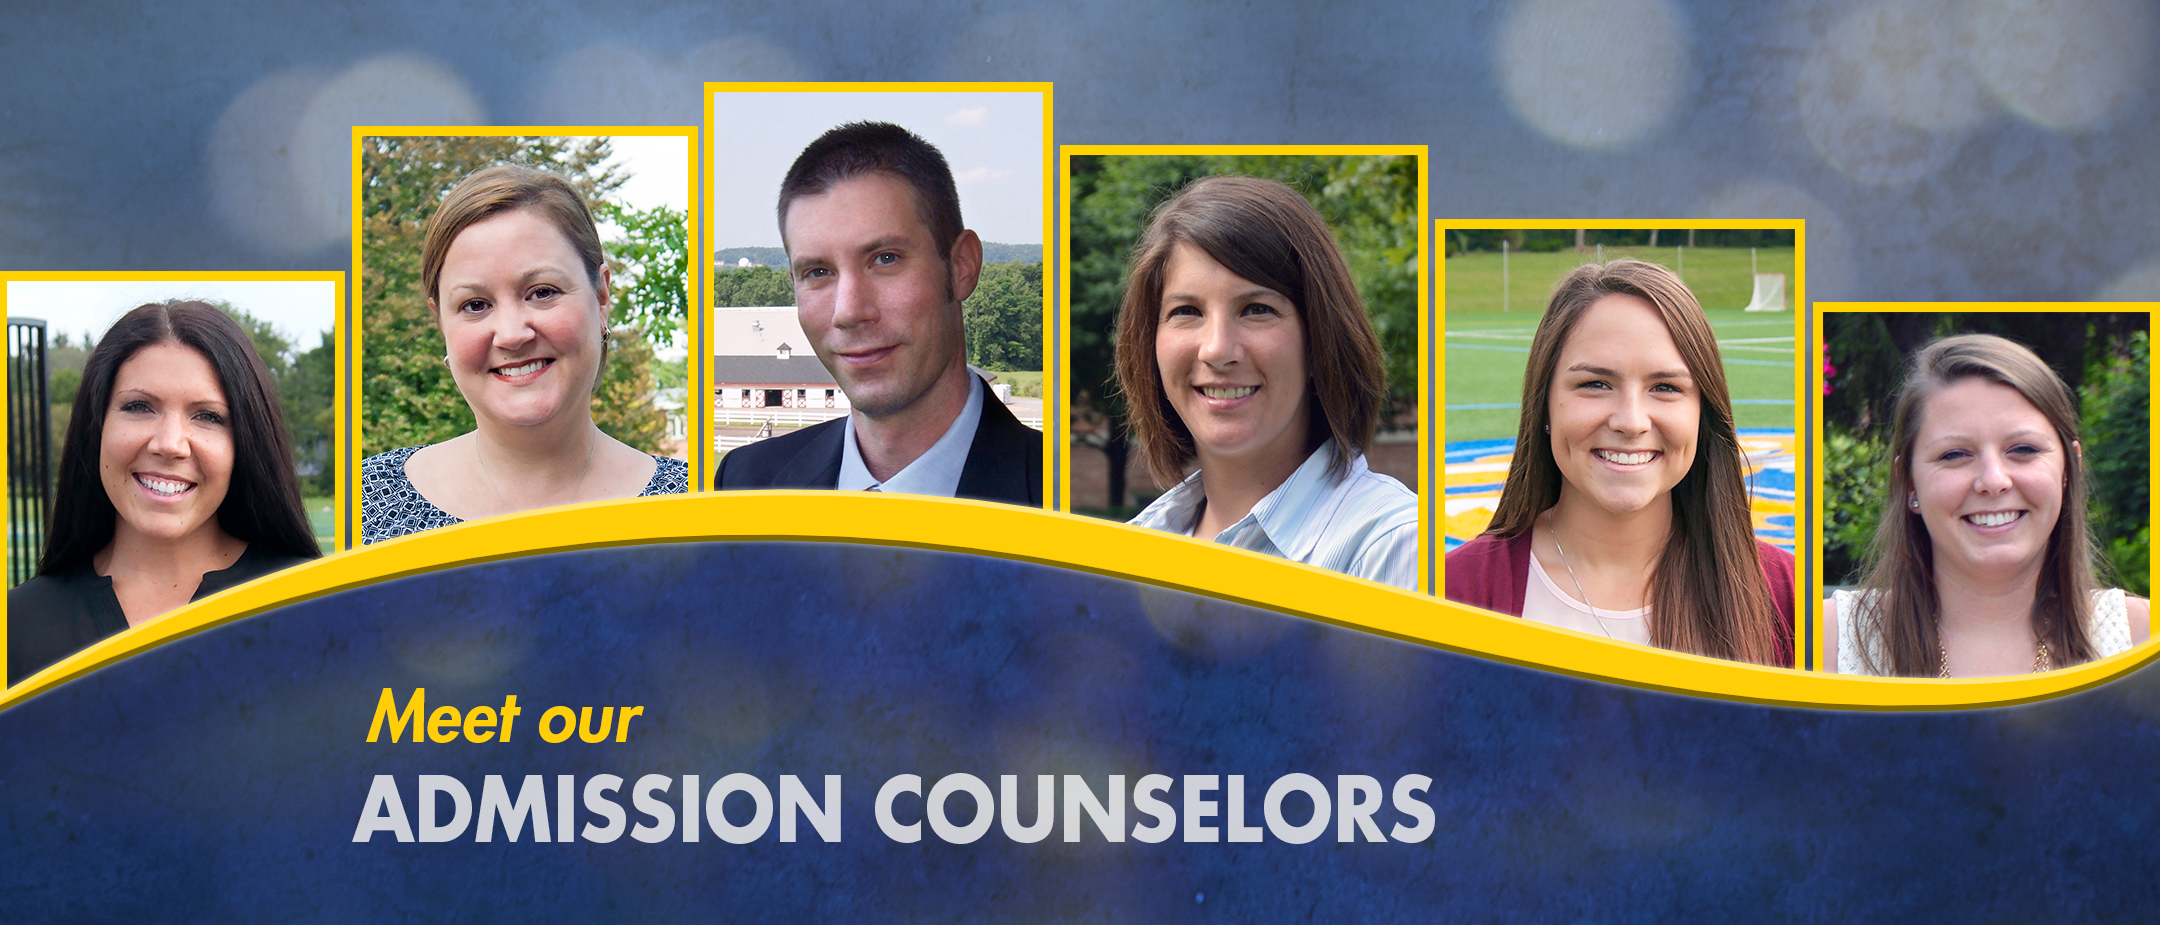 meet the cazenovia college admissions counselors cazenovia college choosing the right college is one of life s most important decisions so many colleges and academic programs to choose from cazenovia college s